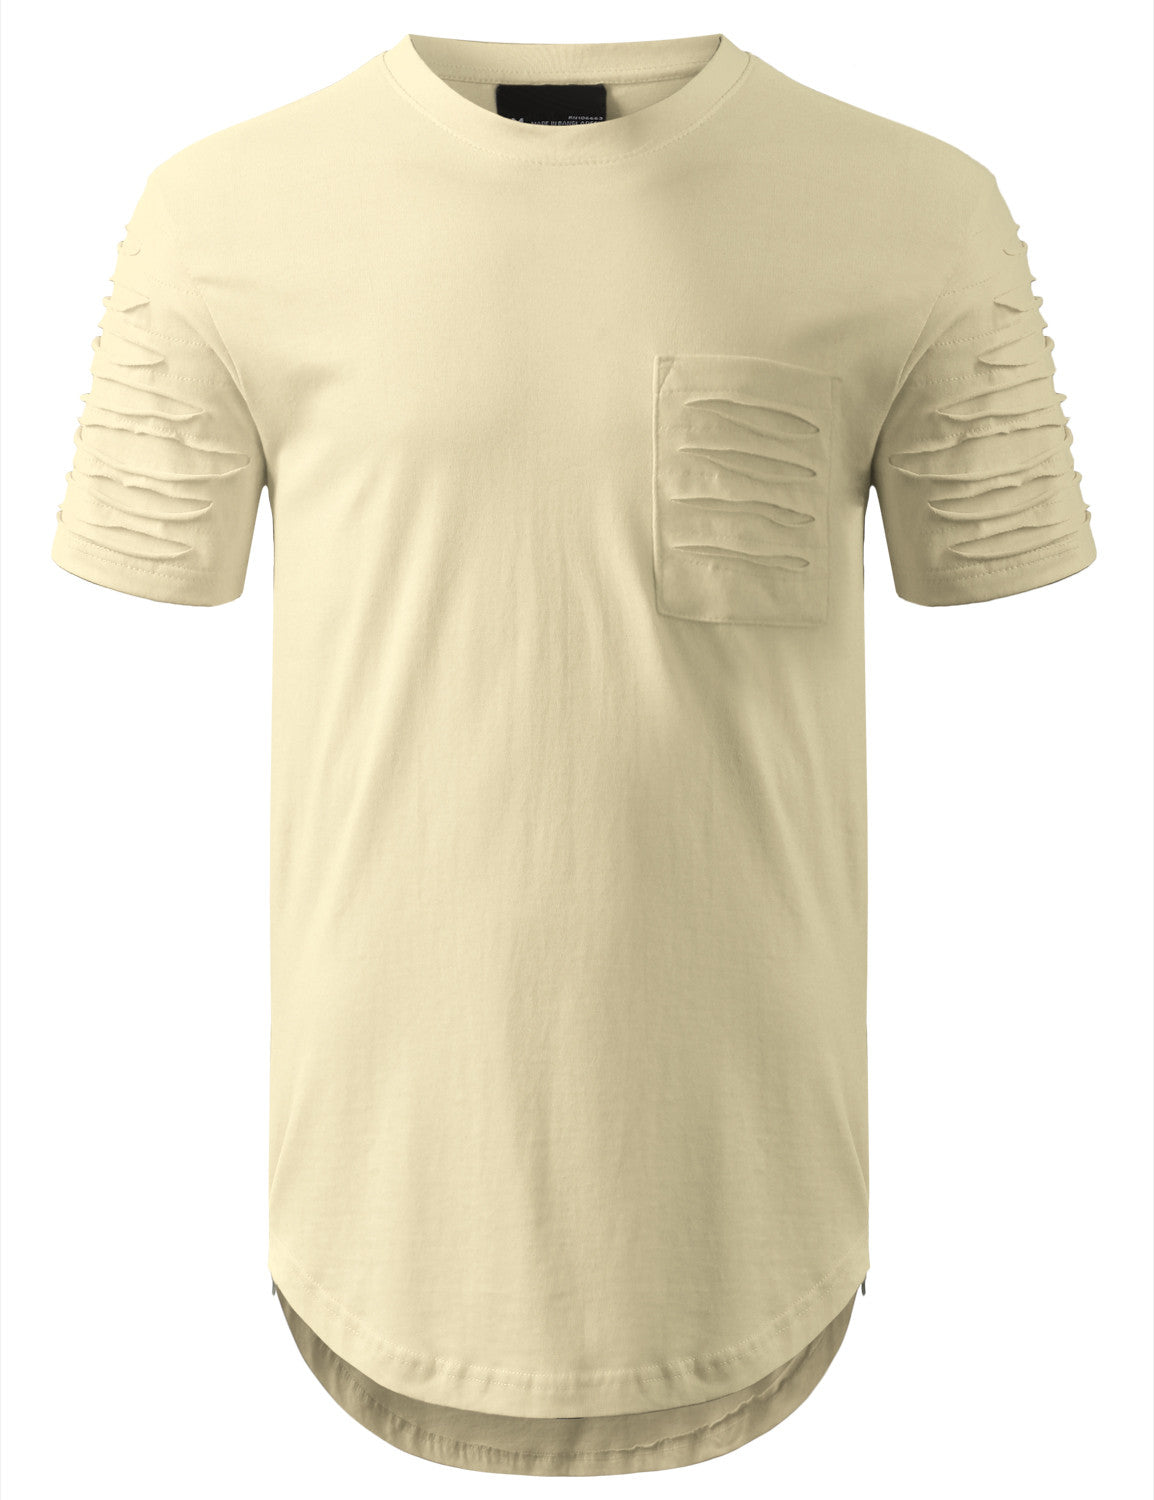 BONE Ripped Chest Pocket Longline Crewneck Tshirts